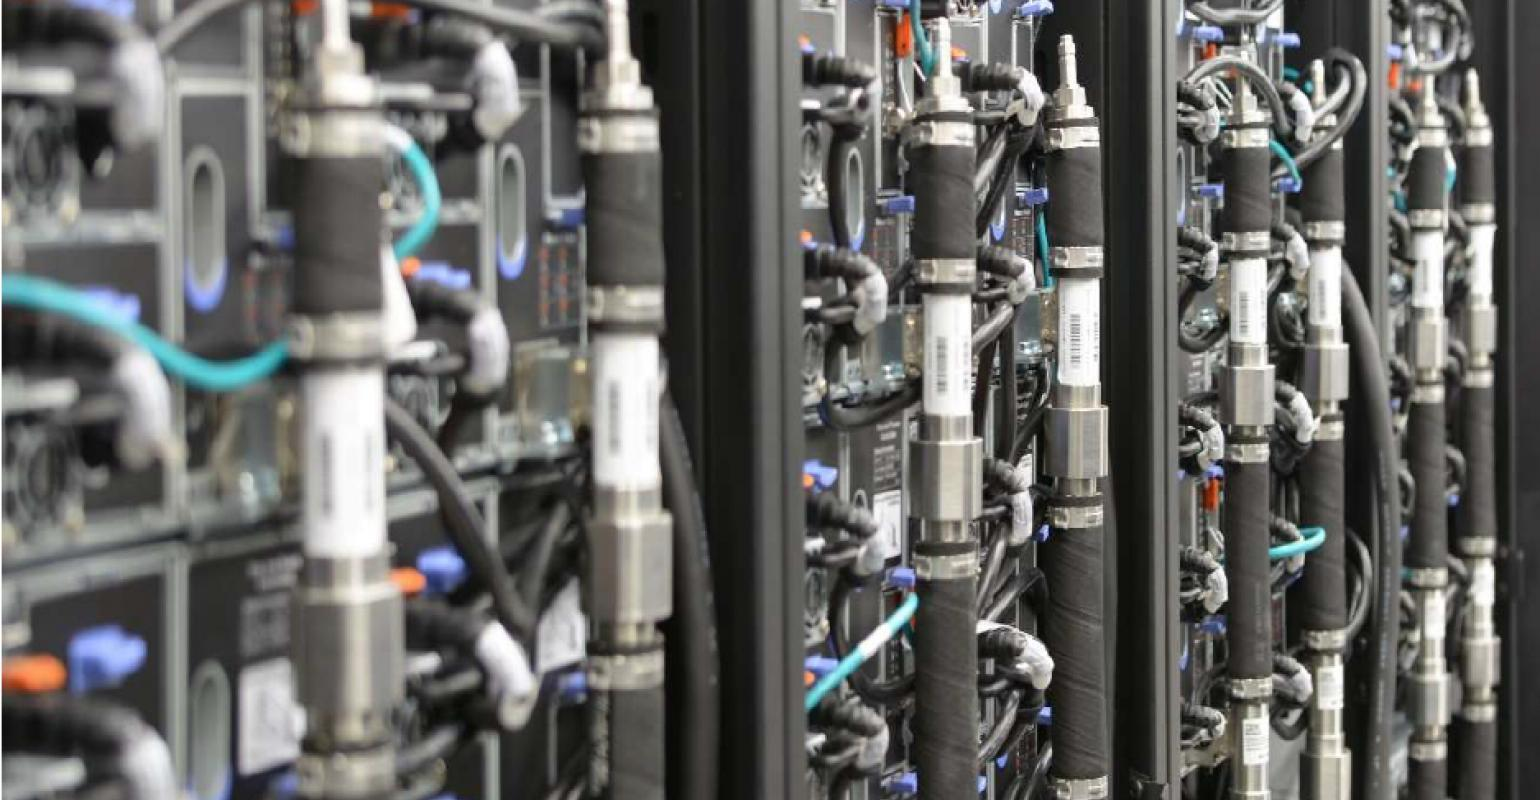 Five Reasons Data Center Liquid Cooling Is on the Rise